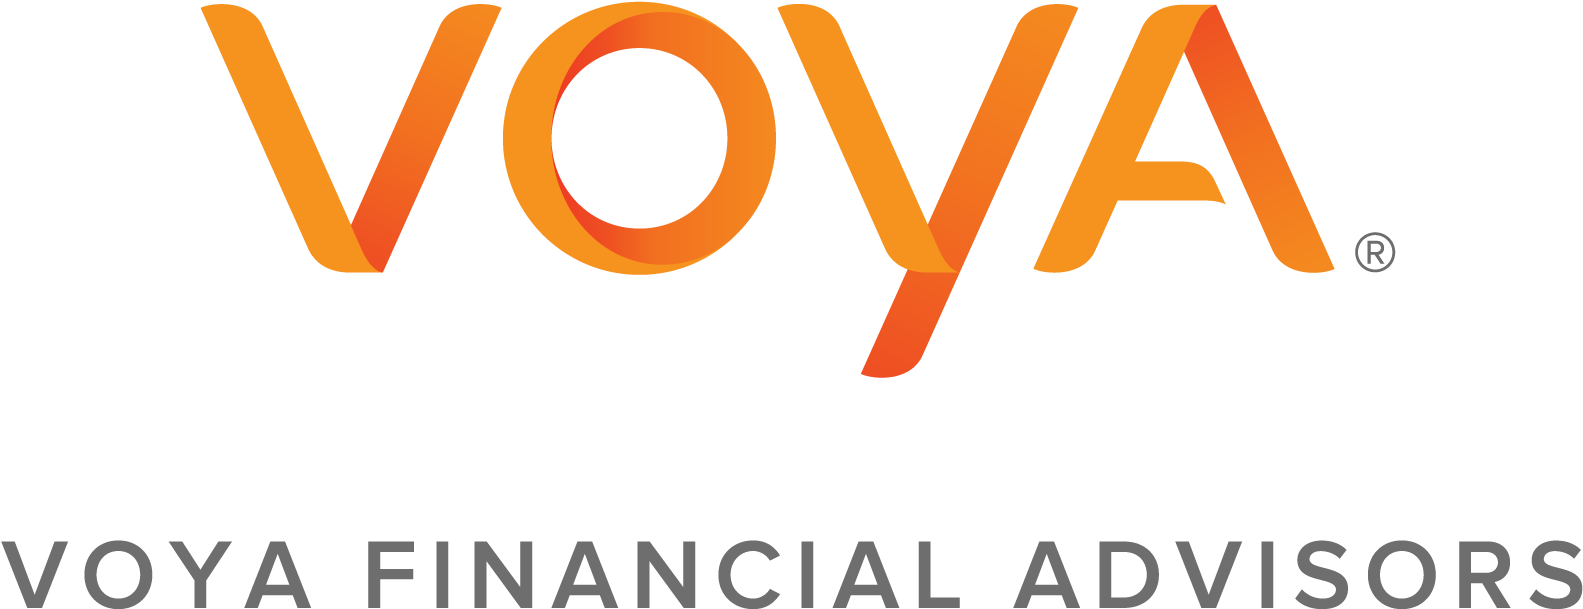 Voya logo Bellevue, WA Voya Financial Advisors